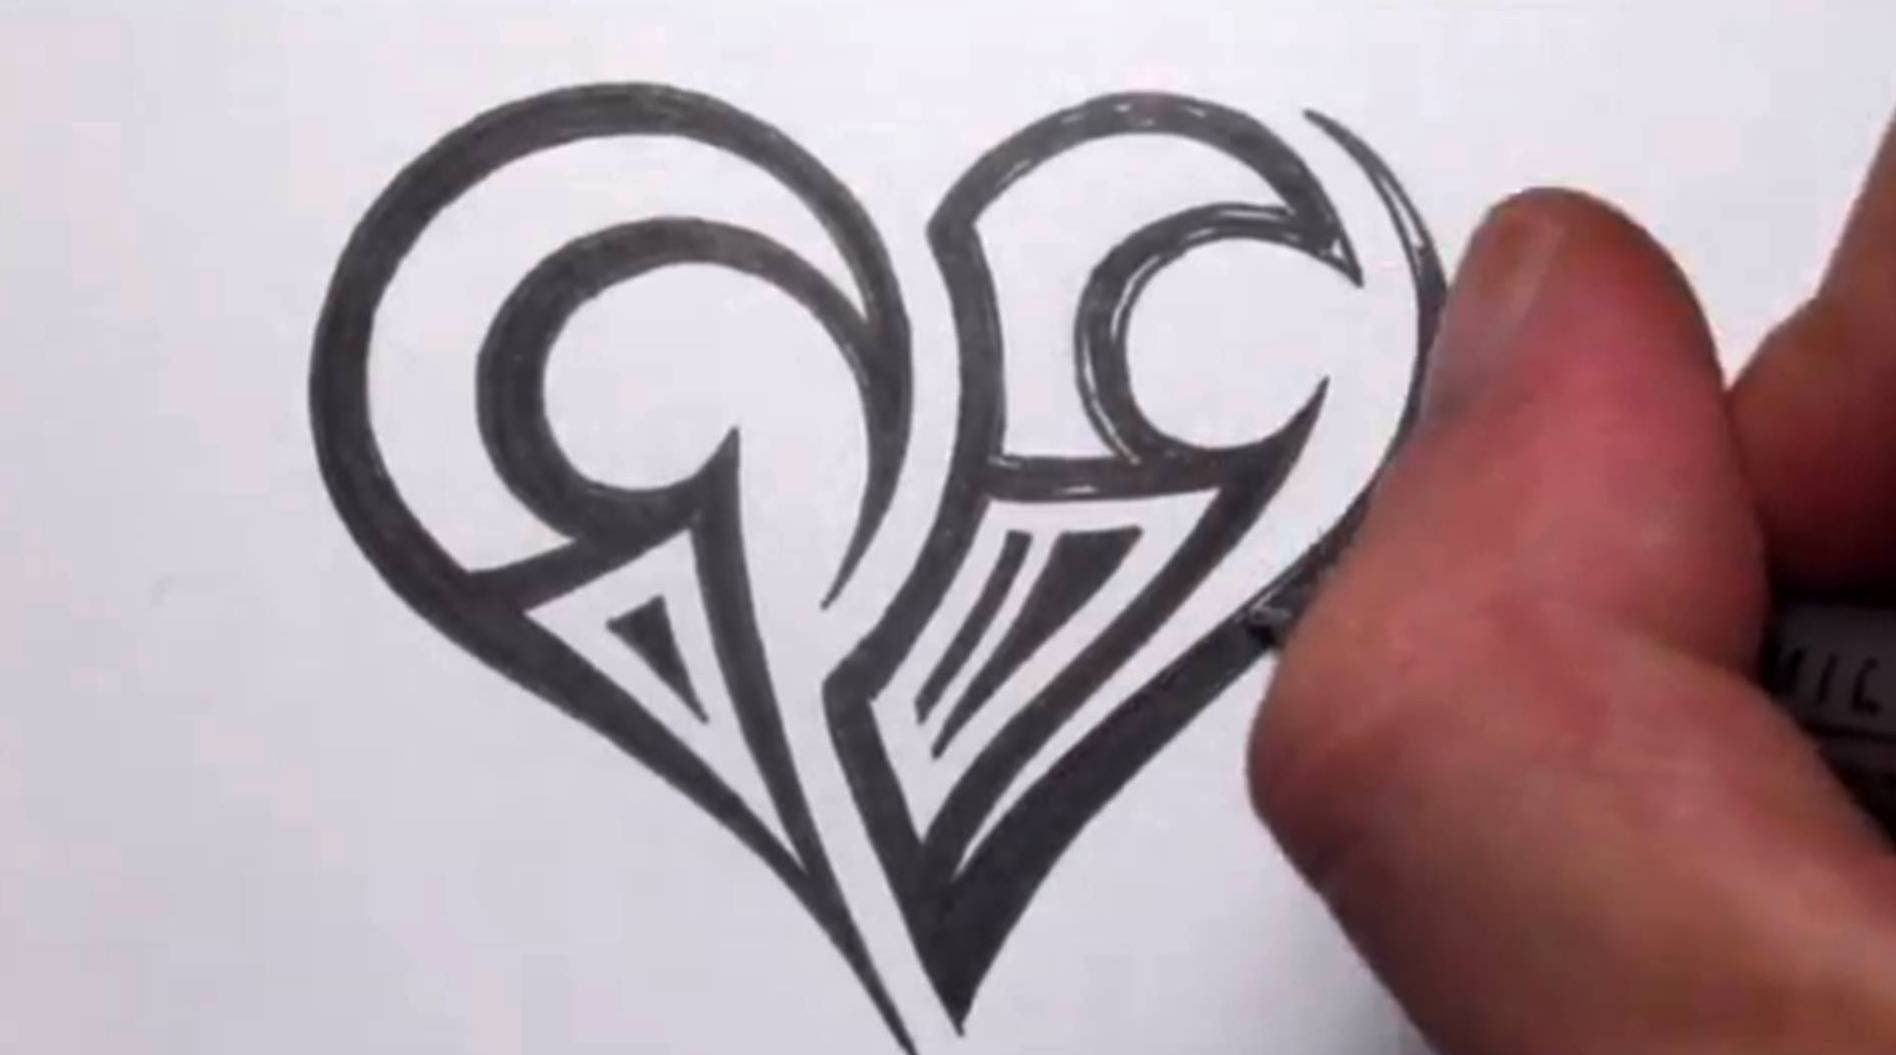 Drawing A Simple Tribal Maori Heart Tattoo Design Kids Initial Tattoos Heart Tattoo Designs Tribal Heart Tattoos